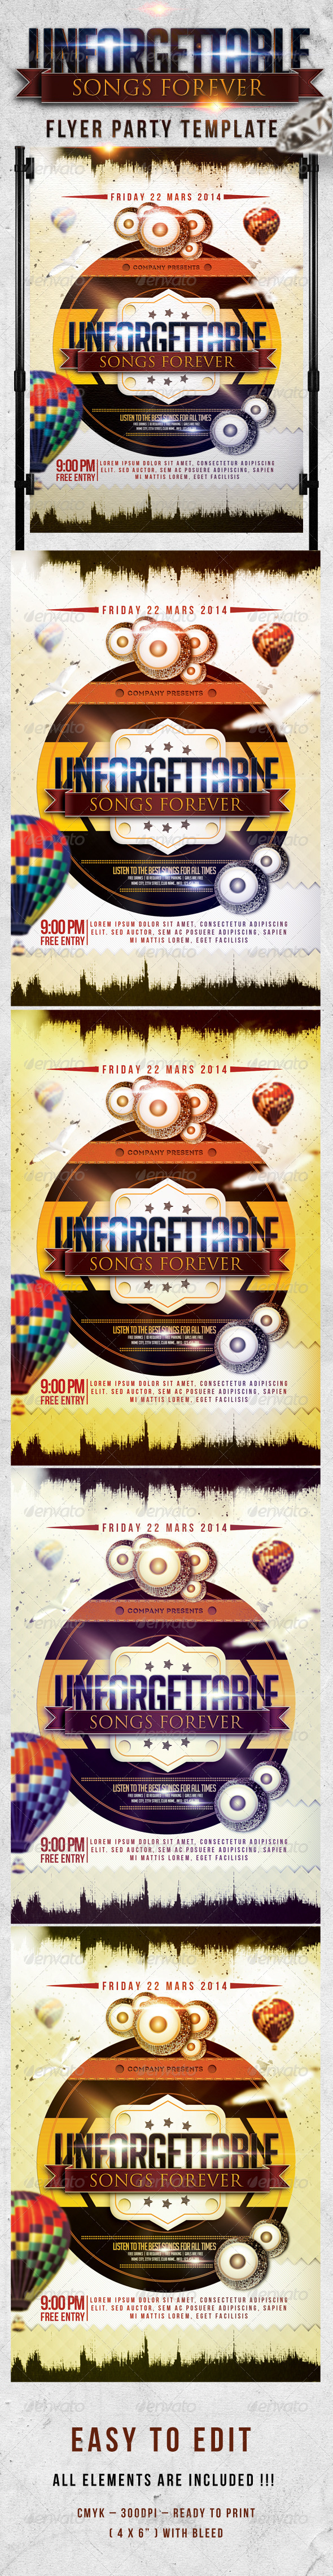 Unforgettable Song Forever Flyer Template  - Events Flyers